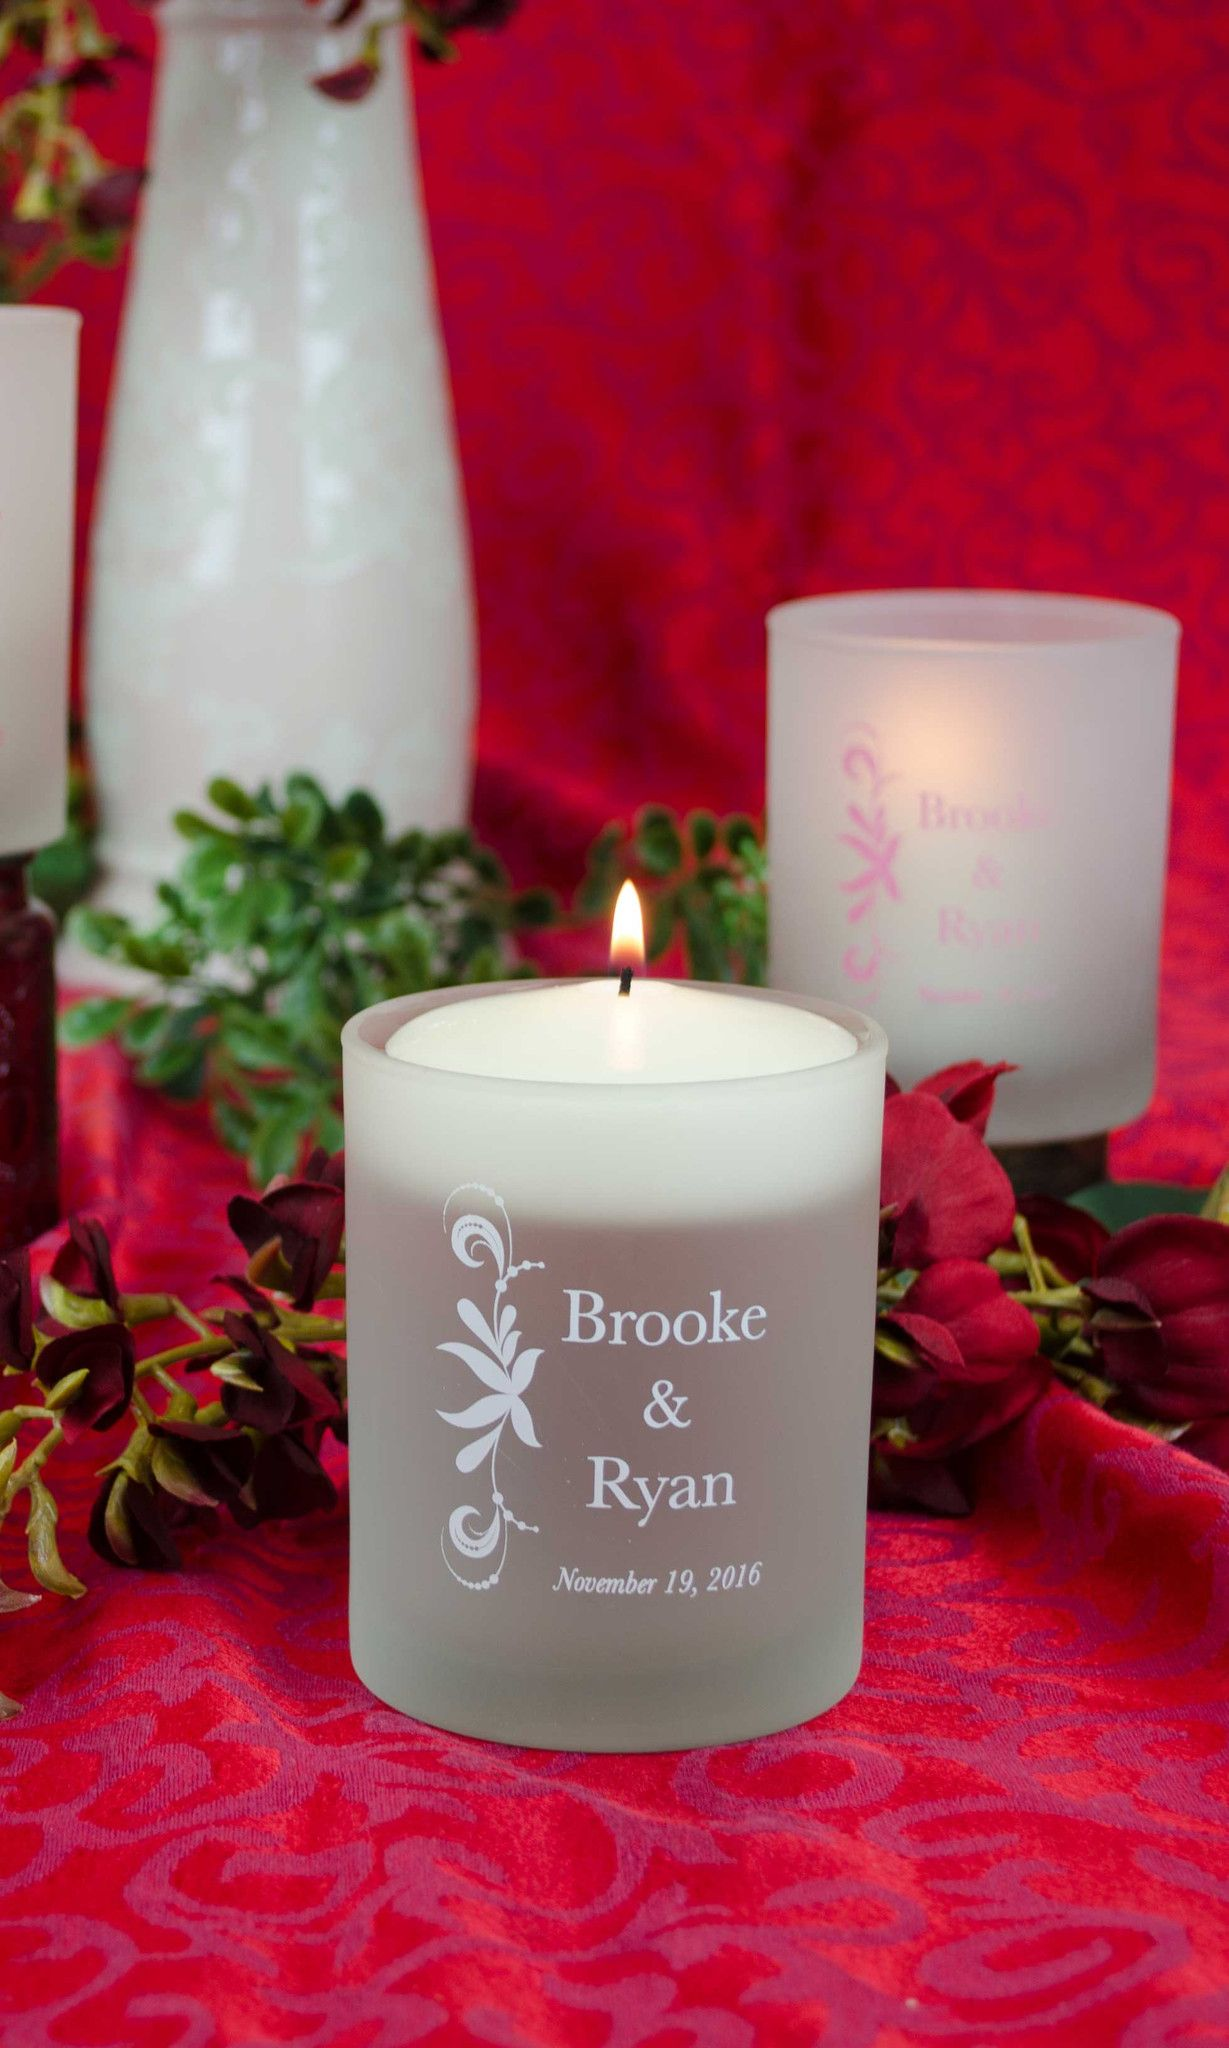 centerpieces for wedding receptions with candles%0A Frosted Tumbler  wedding candles  personalized wedding centerpieces wedding  centerpieces  wedding candle holder